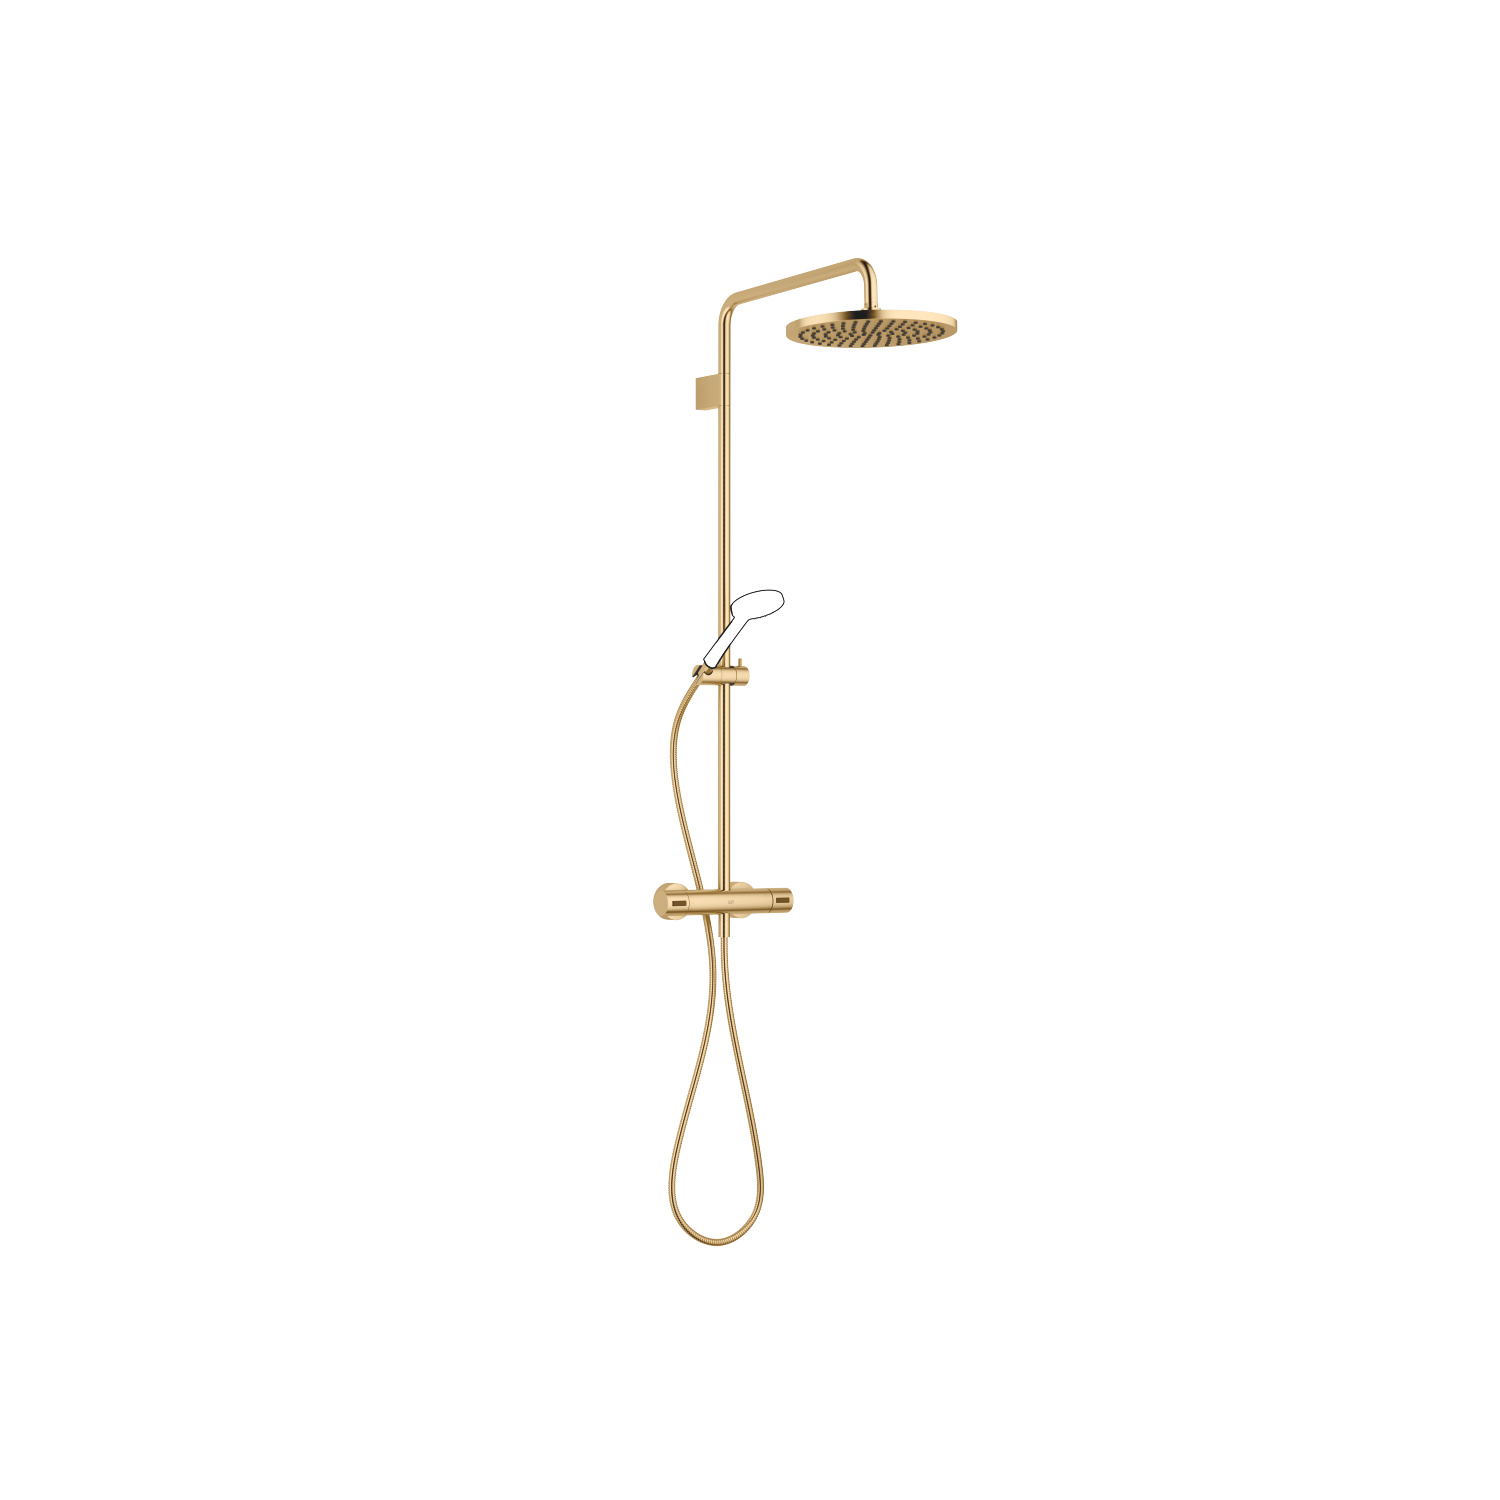 Exposed shower set with shower thermostat without hand shower - Brushed Durabrass